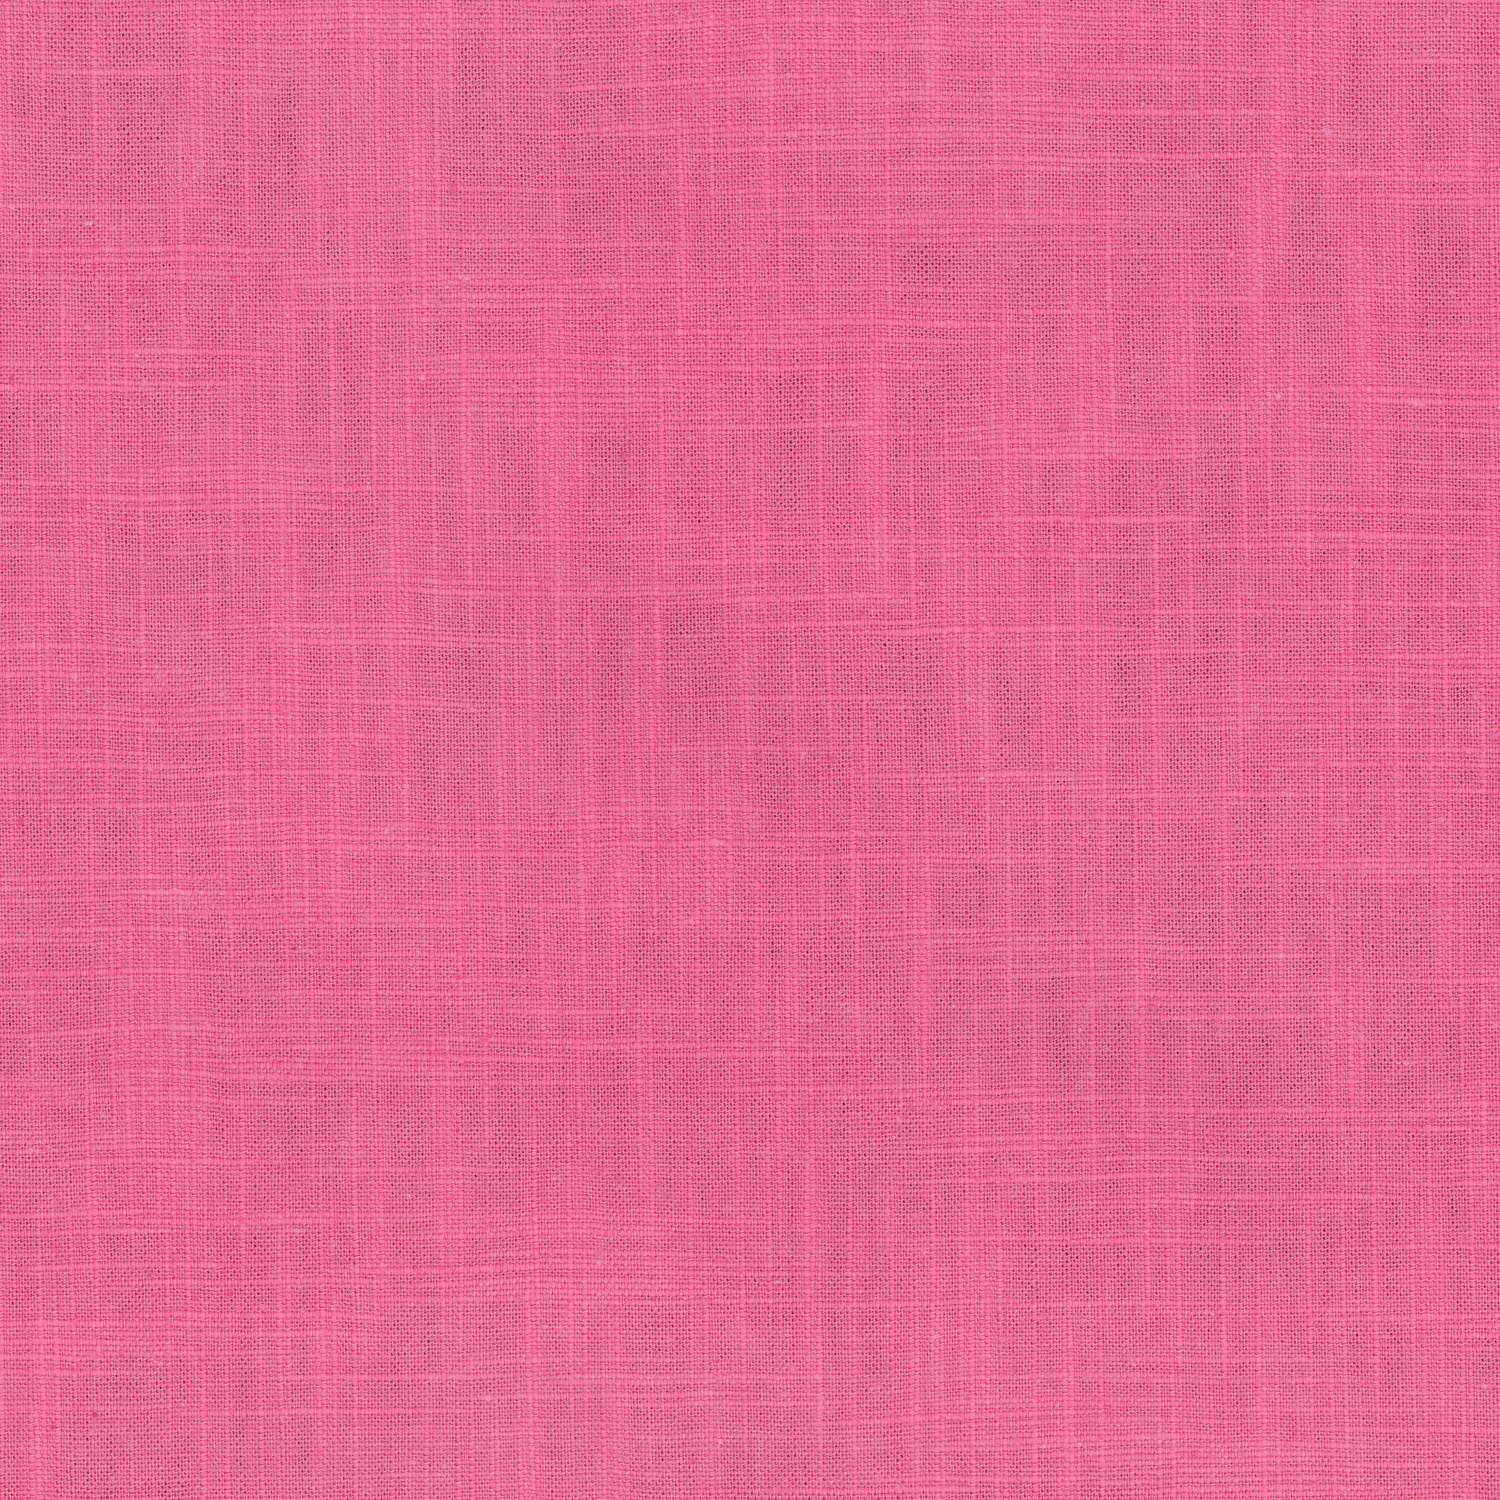 P/K Lifestyles Lightweight Decor Fabric 54\u0022-Derby Lightweight Decor/Petal